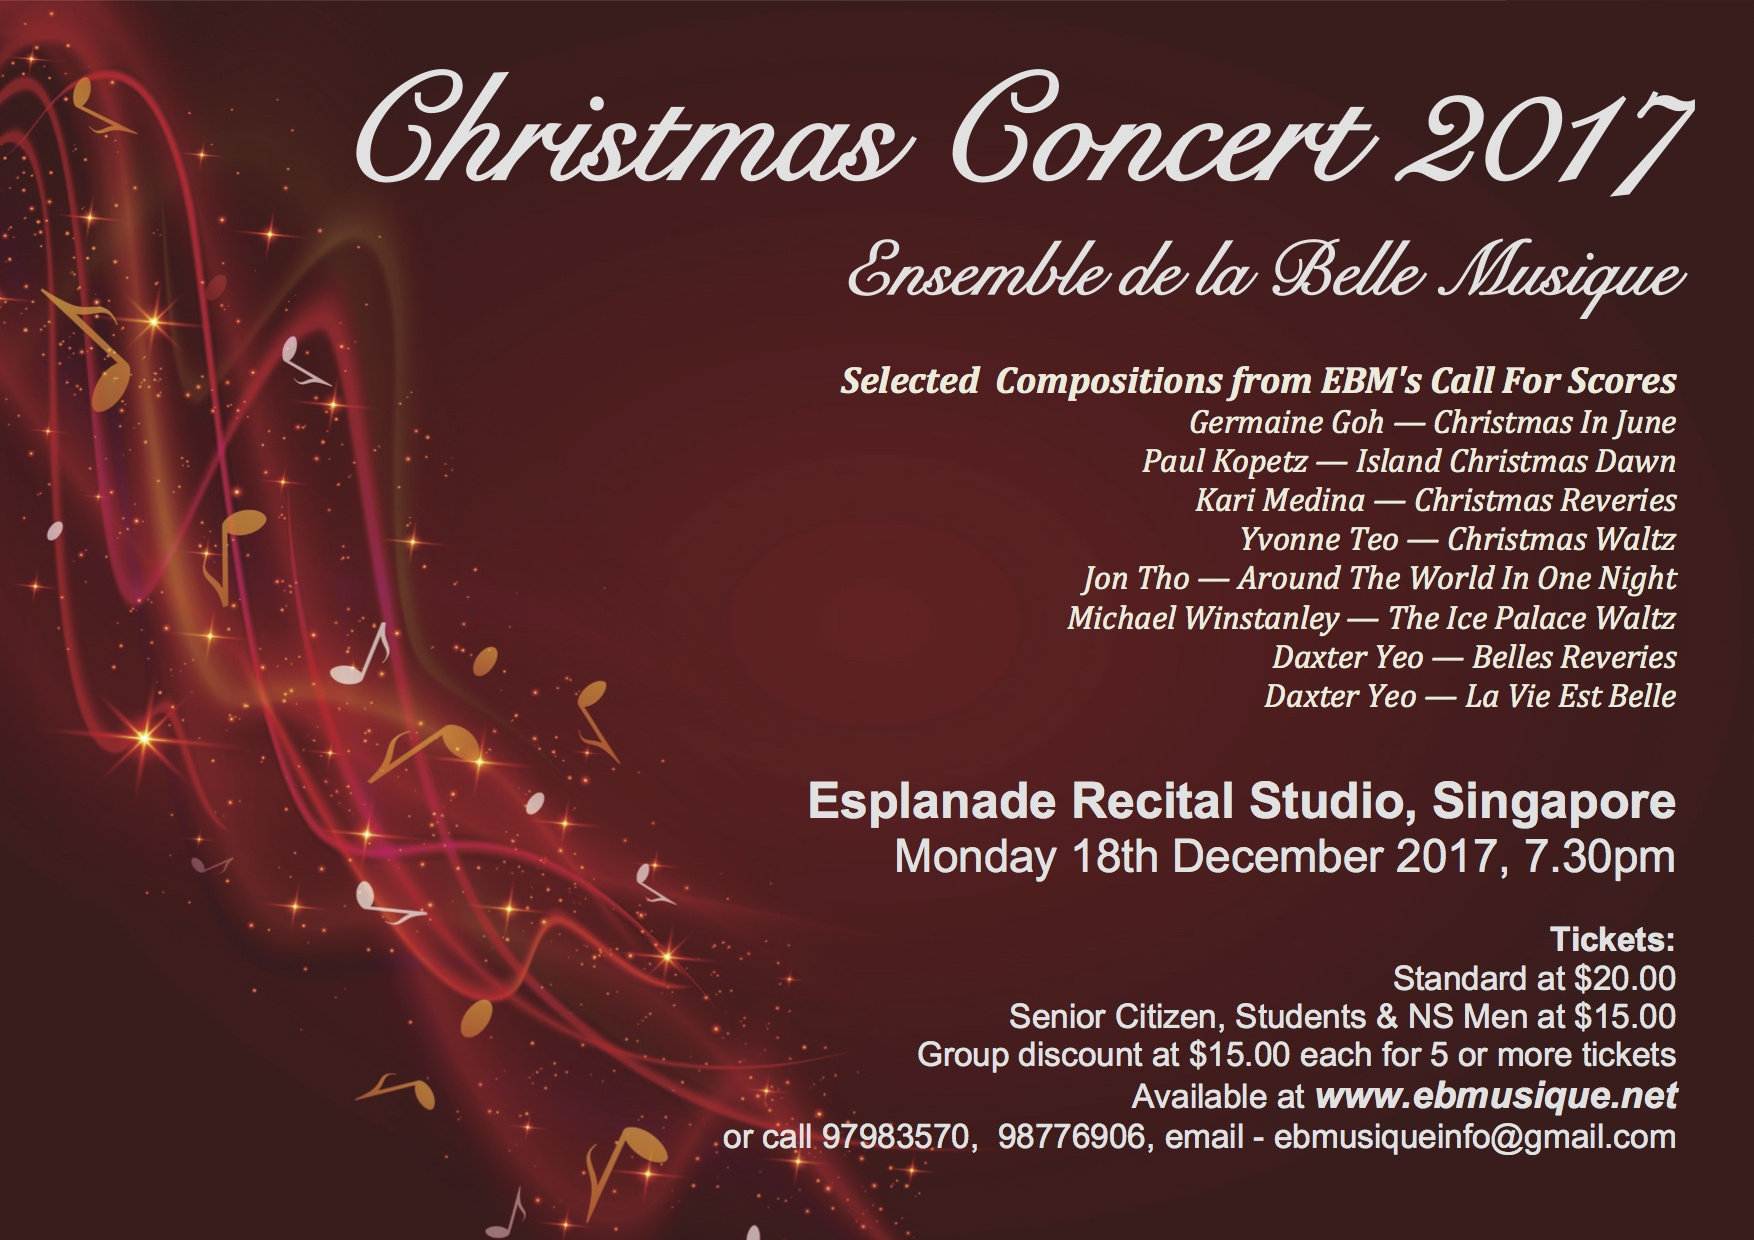 Singapore Christmas Concert 2017 beautiful and melodious music